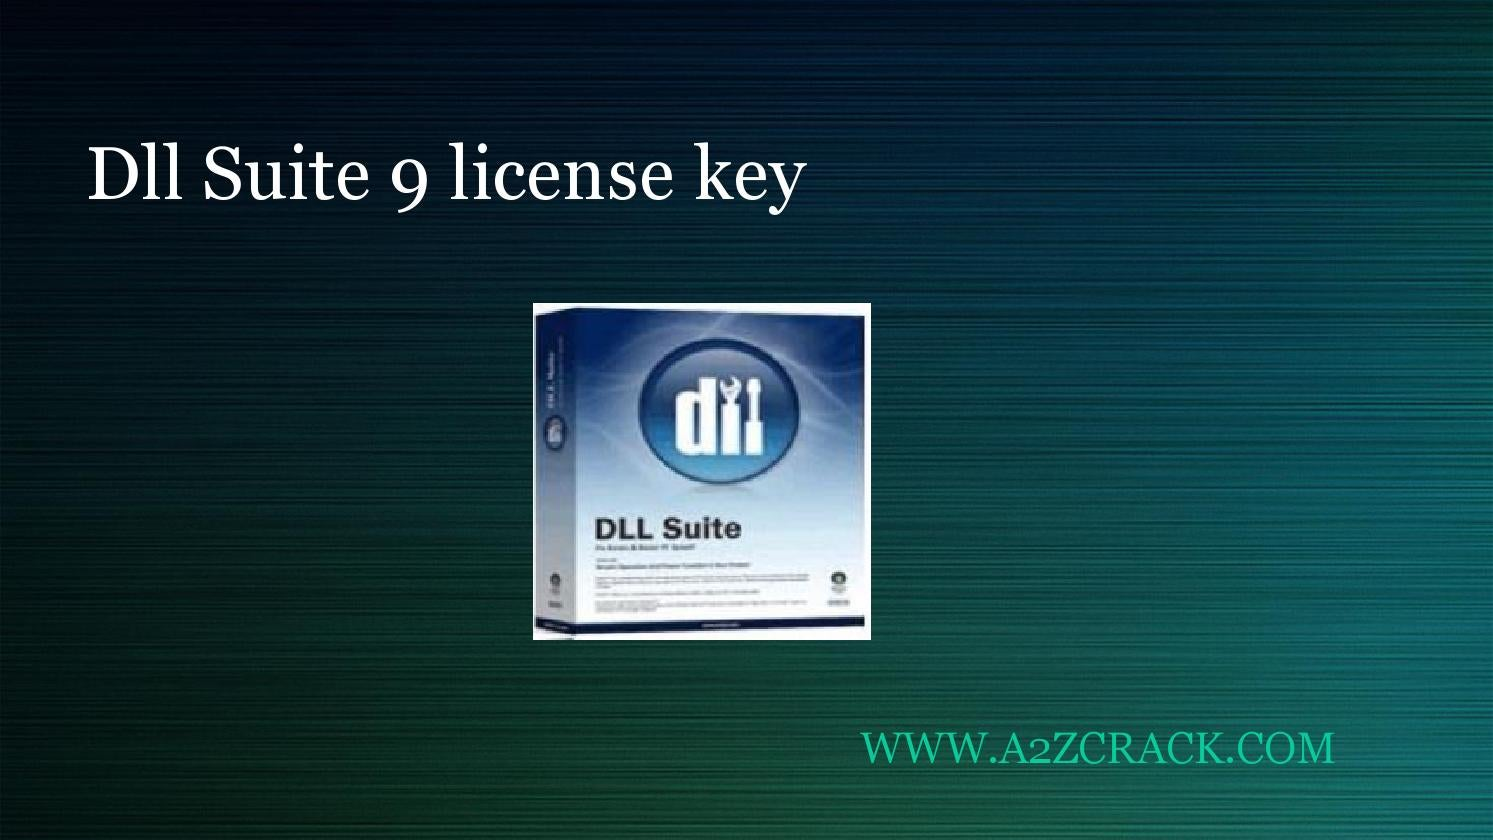 dll suite version 9.0 with license key